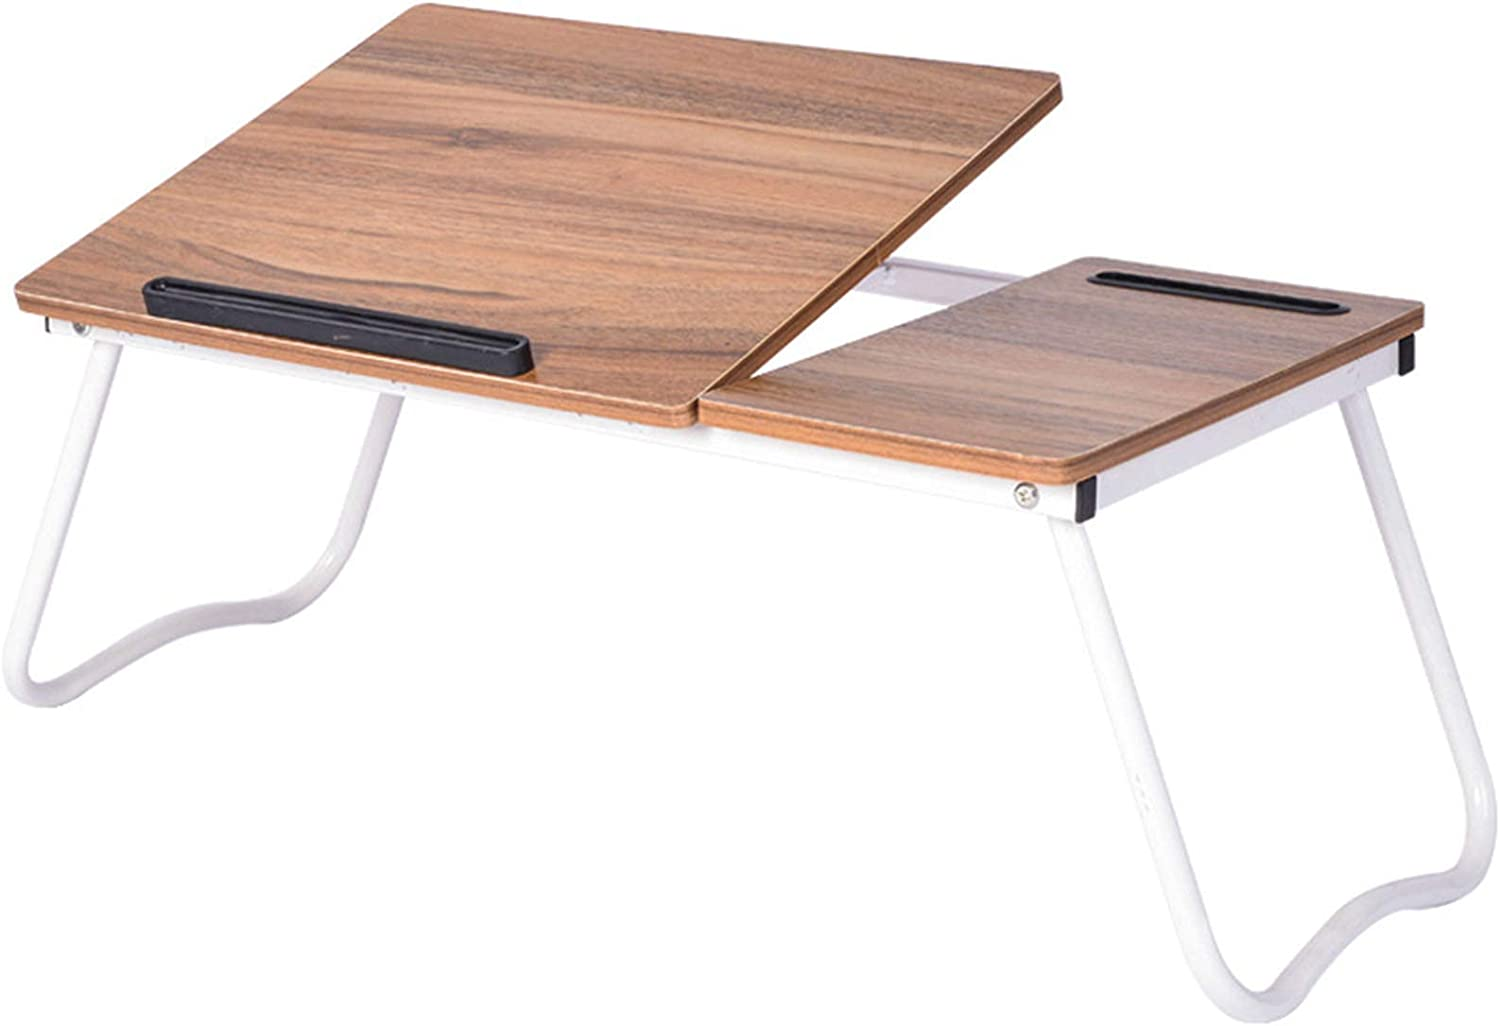 Colorado Springs Mall favorite Laptop Table for Bed-Multi-Functional Bed with Tray